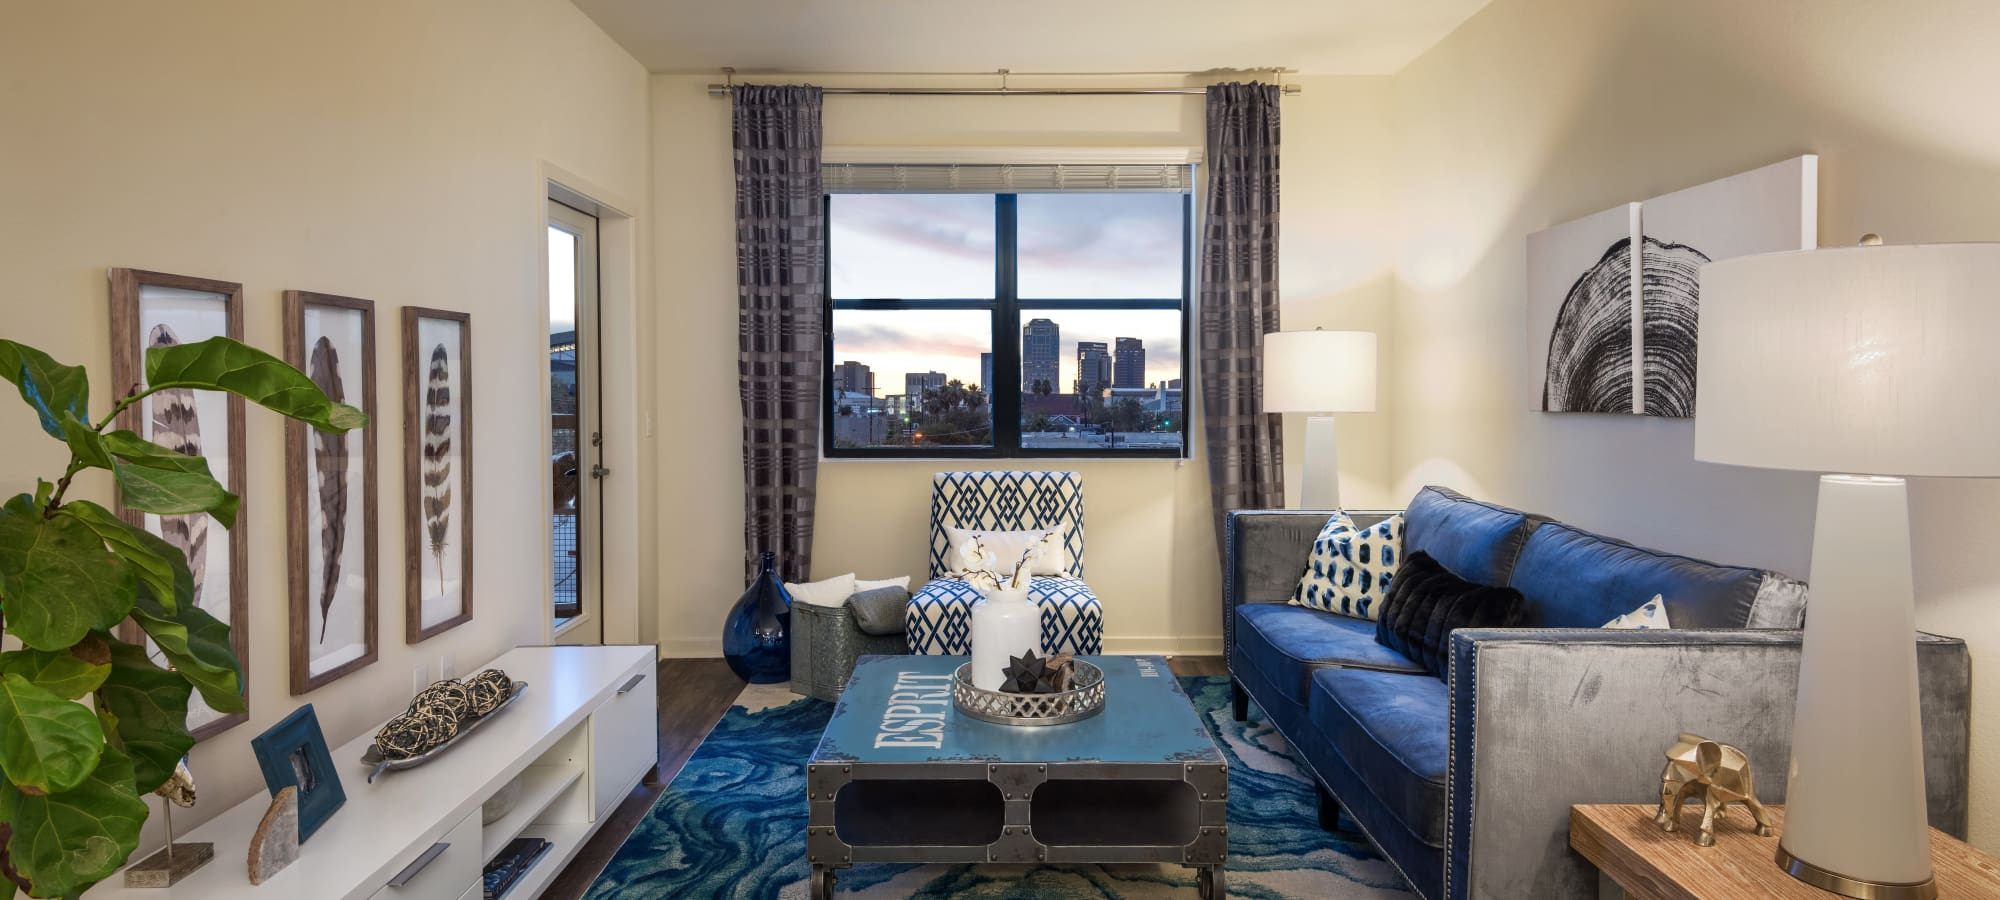 Beautiful view of the city from well-decorated model home's living room at Capital Place in Phoenix, Arizona